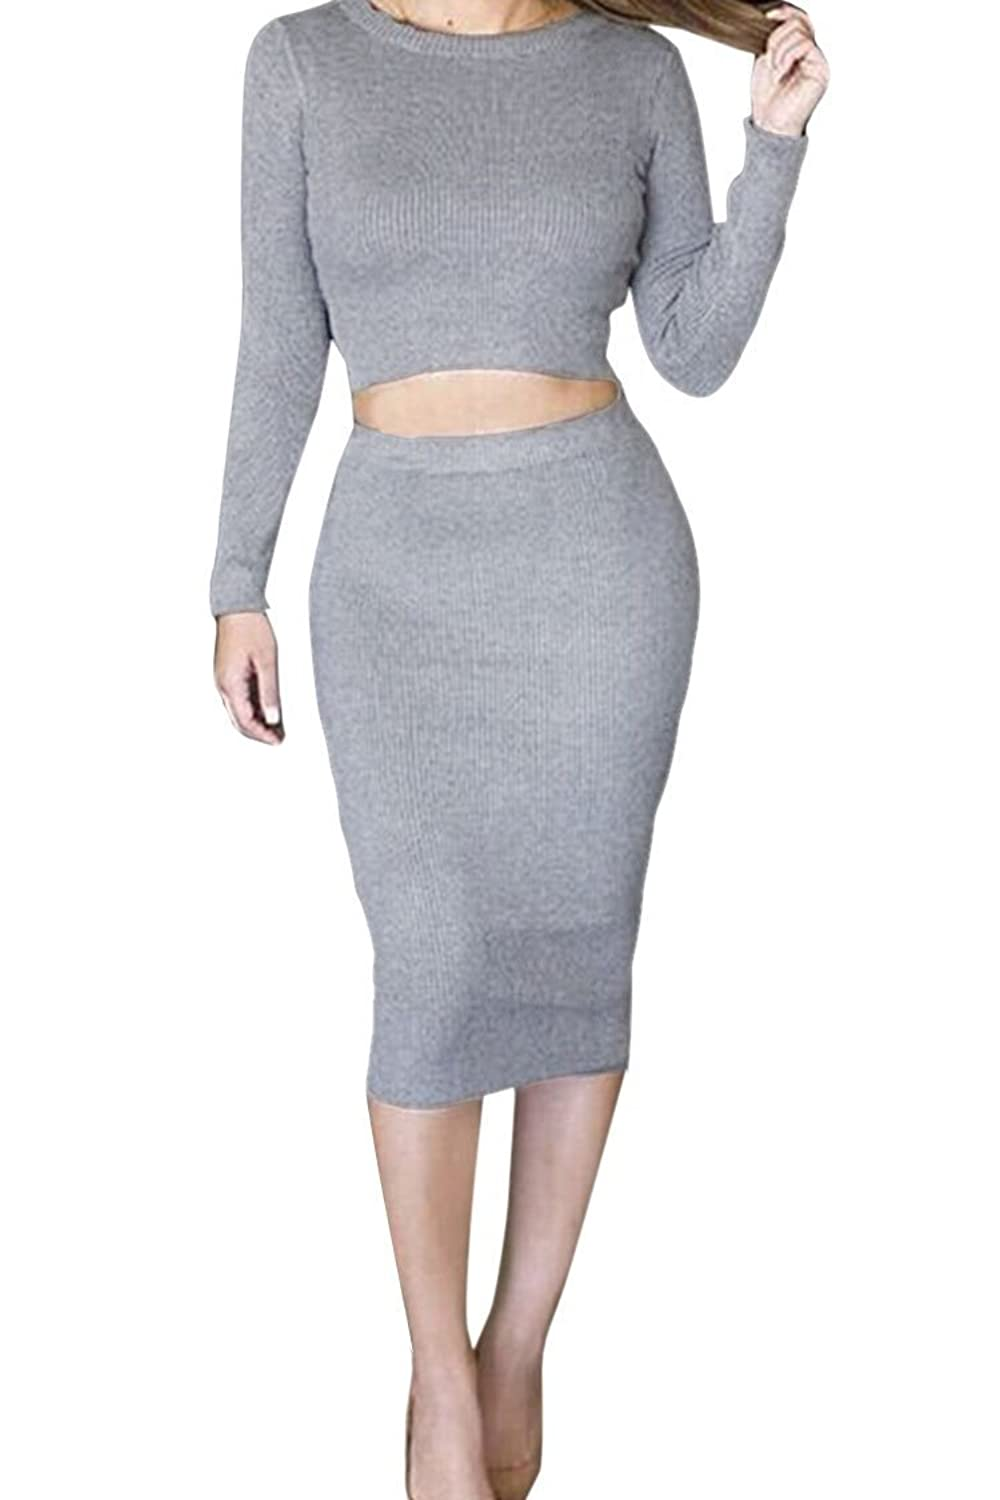 Haogo Womens Sexy Crop Top Midi Skirt 2 Pieces Bodycon Dress